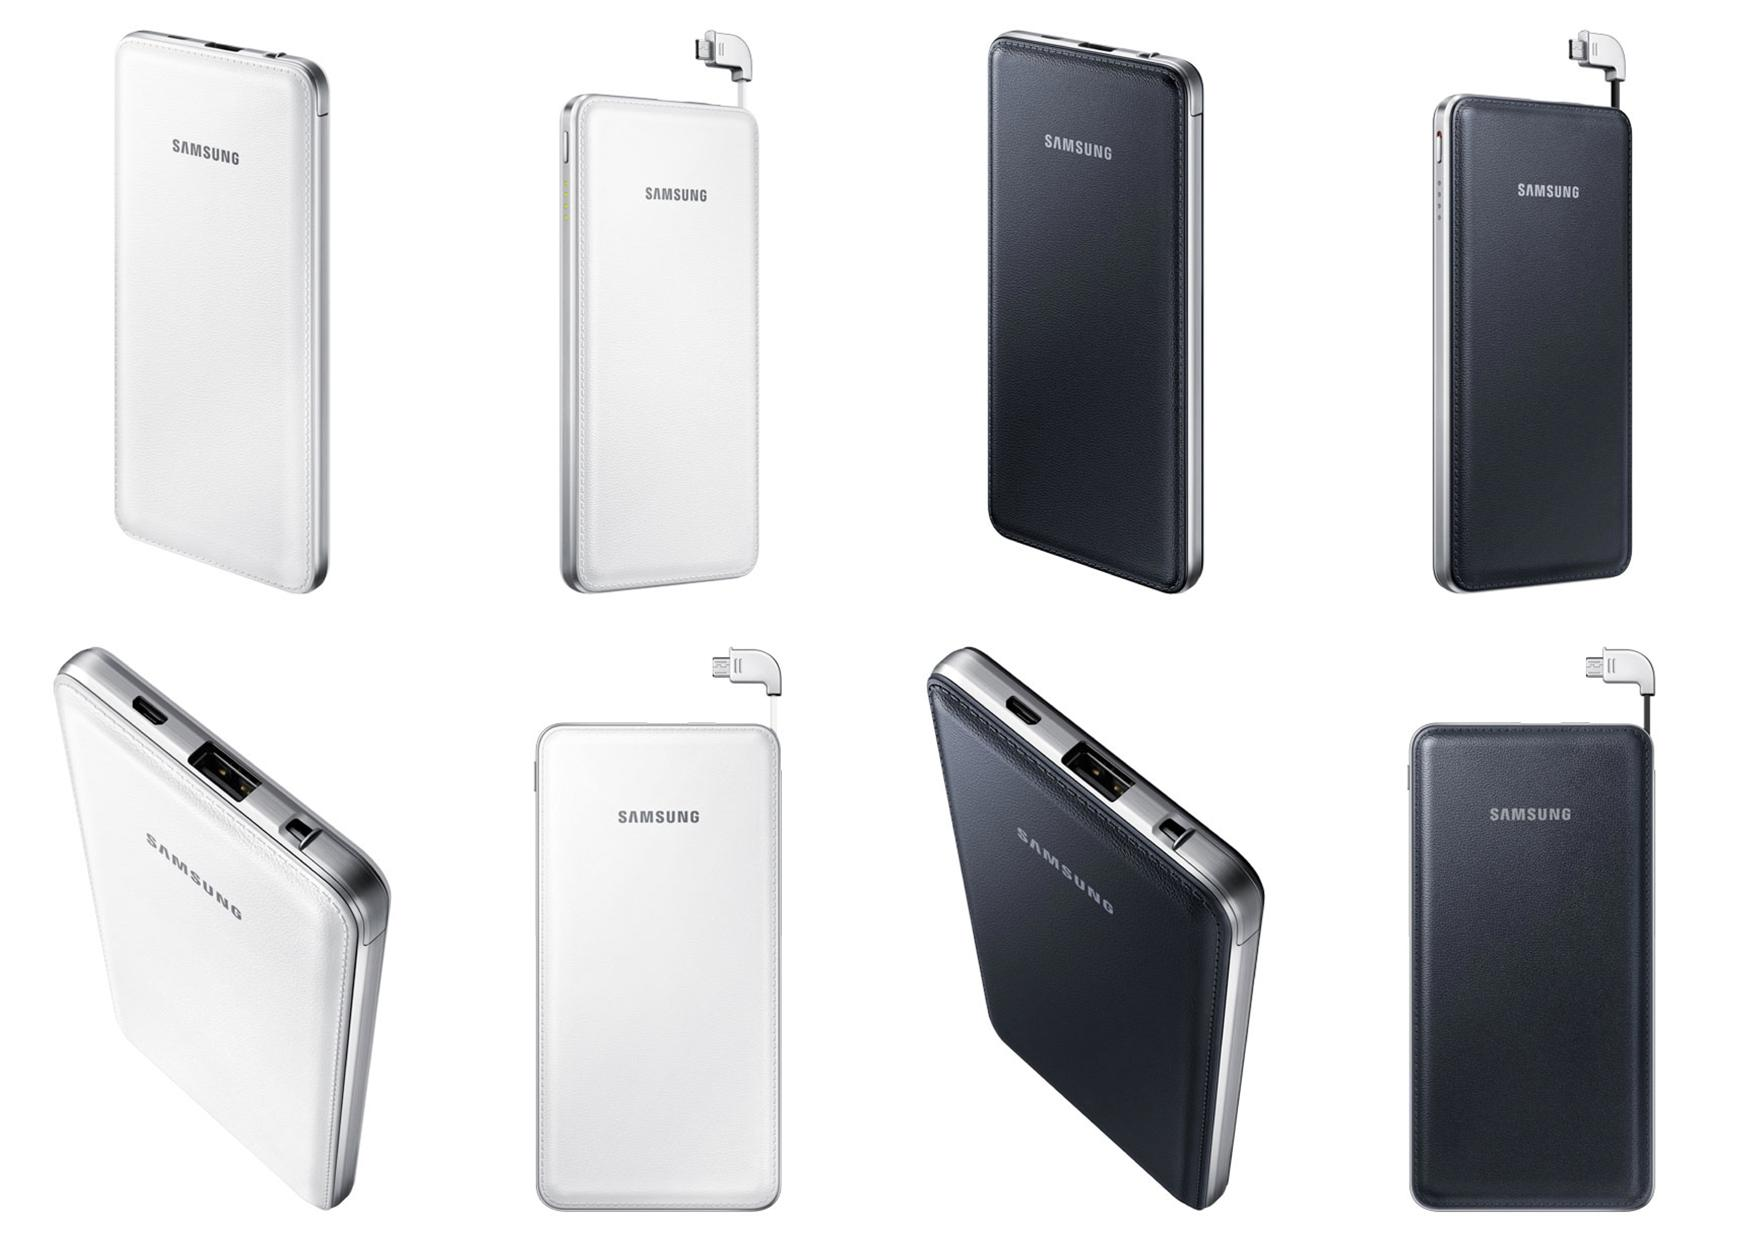 Bdotcom = Samsung Dual Charging Battery Pack 9500 mAh Power Bank